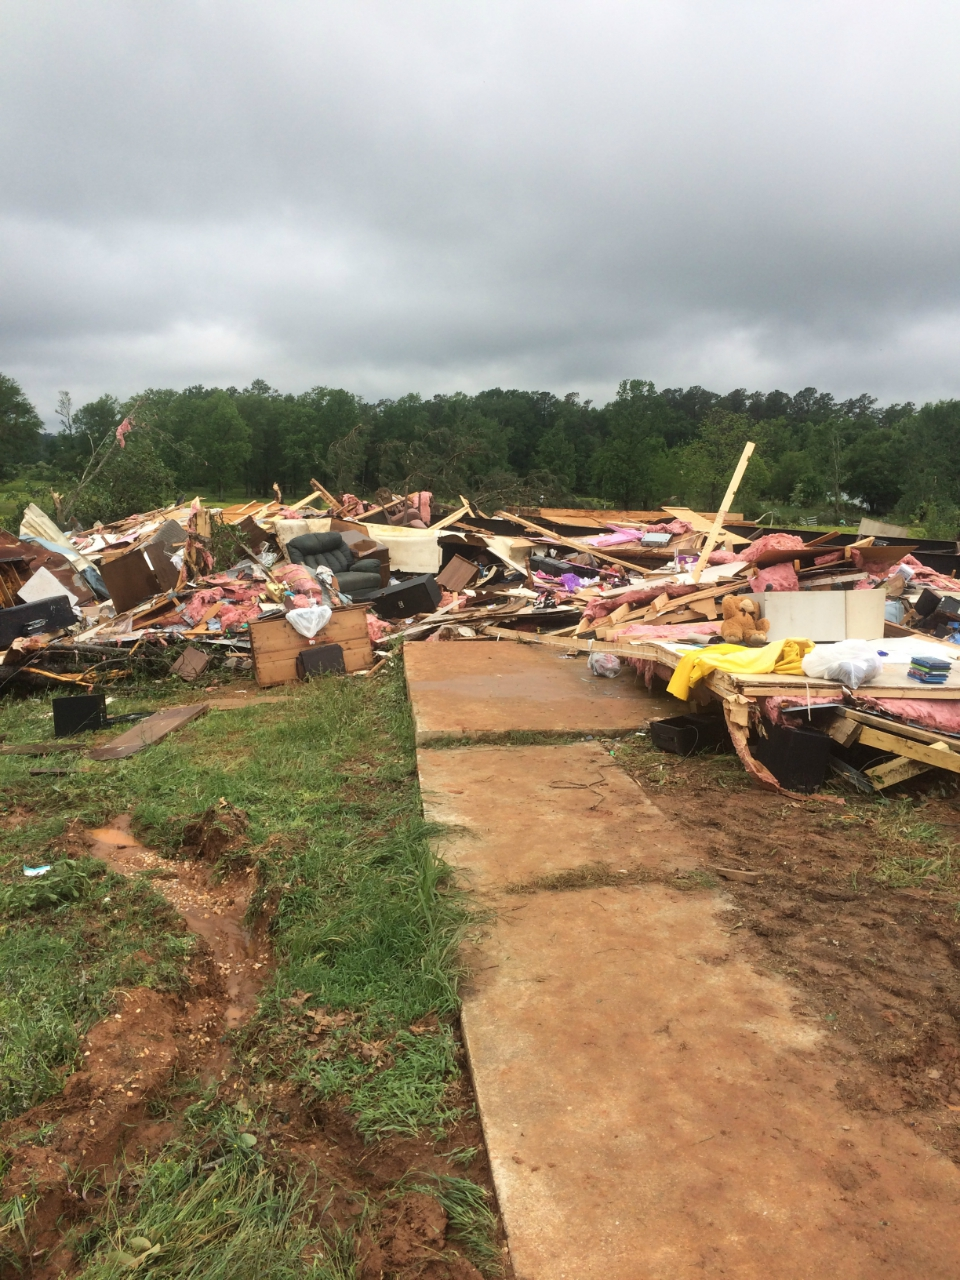 EF2 tornado damage in Nashville, AR